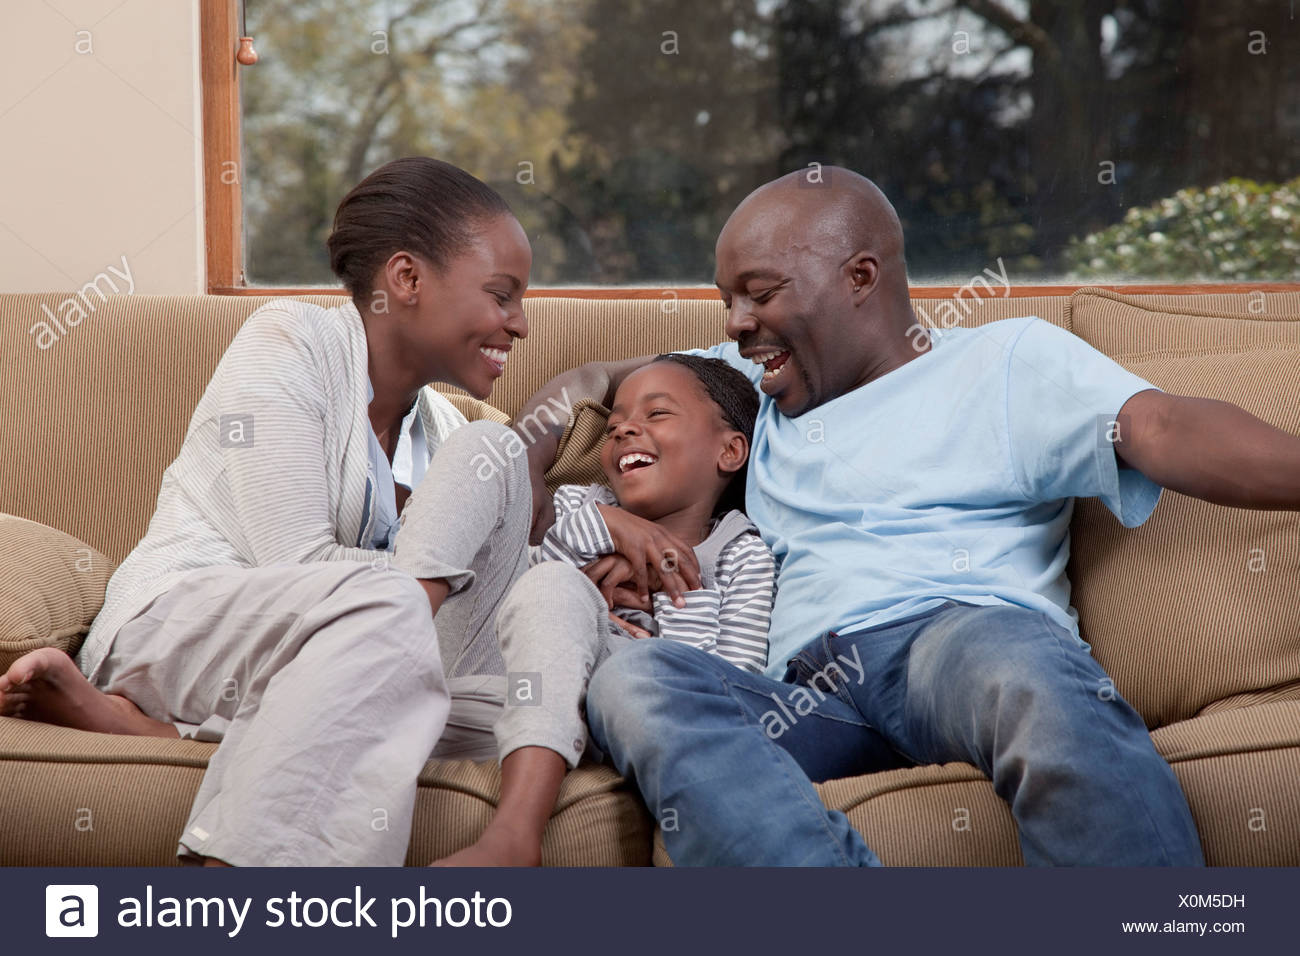 Parents and daughter laughing together, Illovo Family, Johannesburg, South Africa. - Stock Image